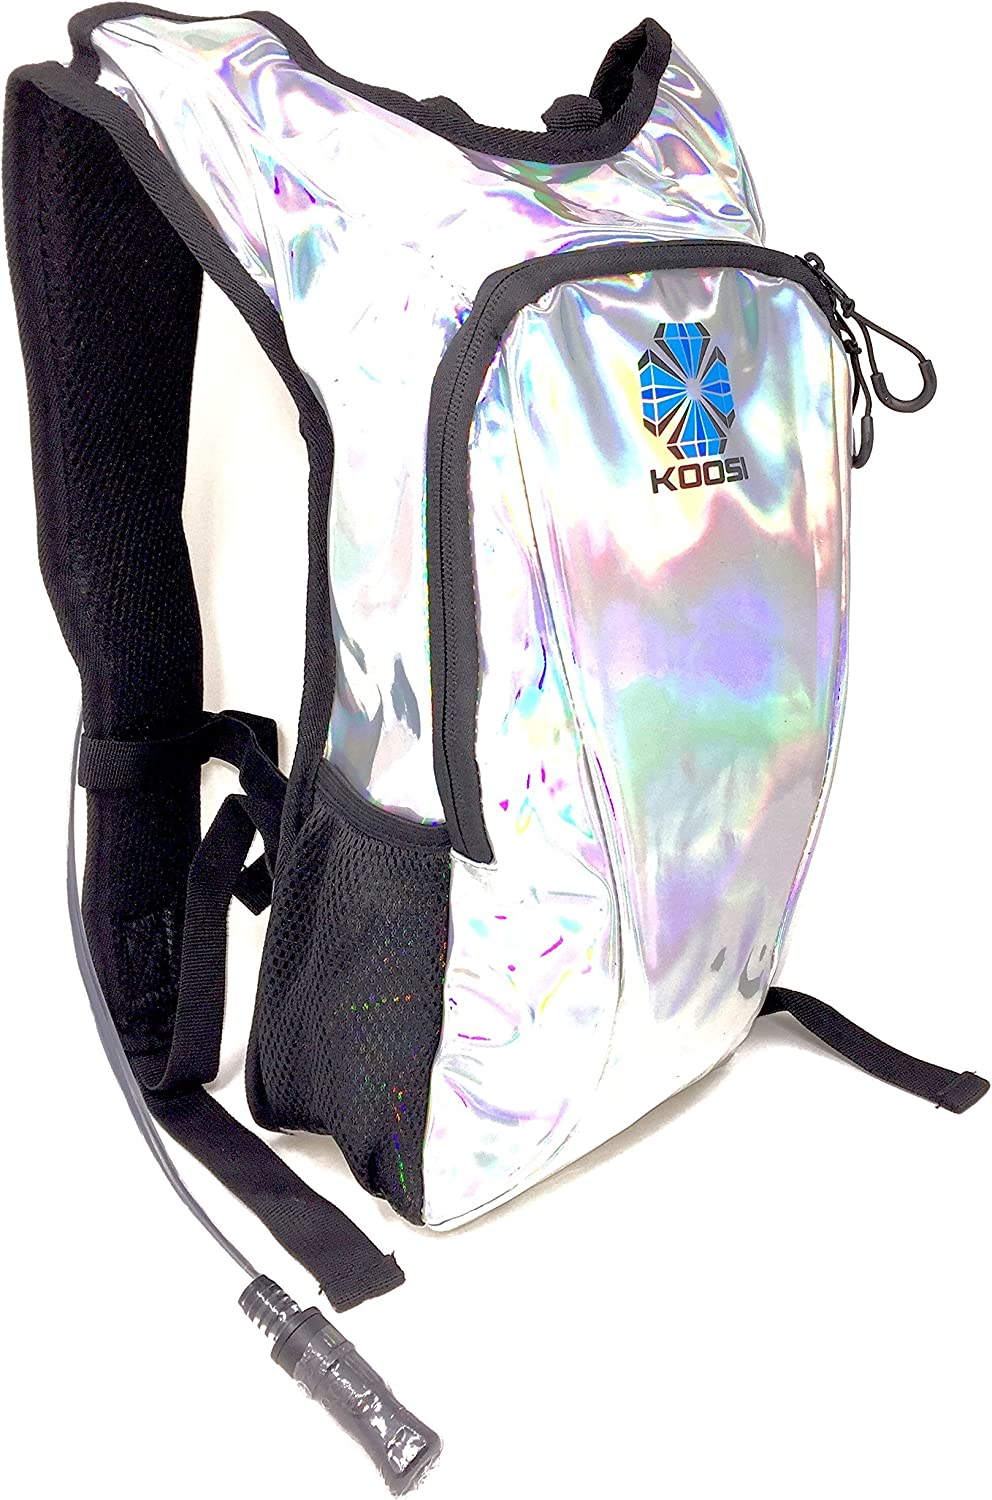 Koosi Hydra-Pack – Holographic Backpack with Hydration Water Bladder Designed Especially for Raves Festivals